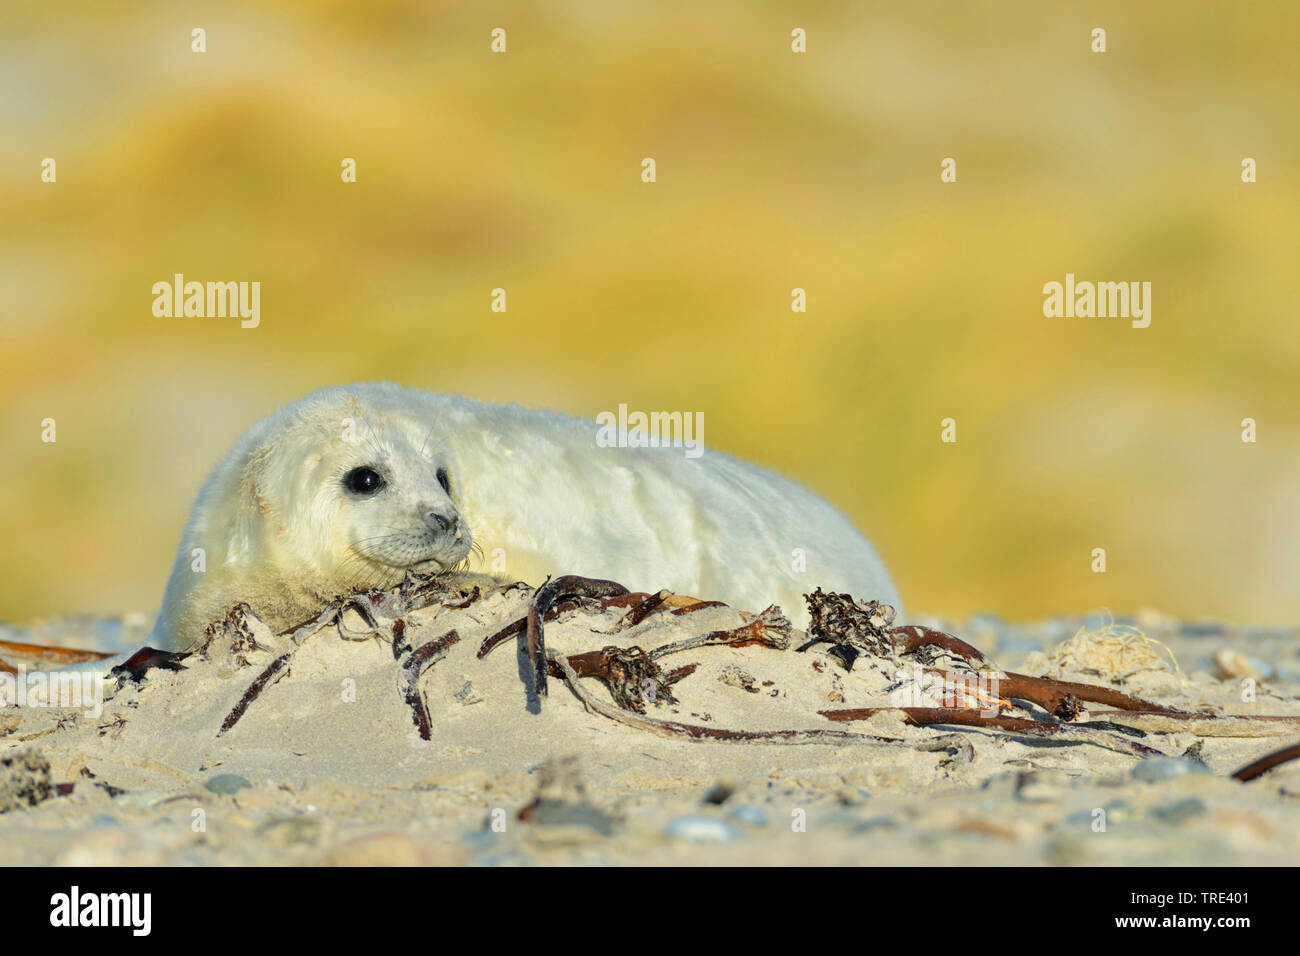 gray seal (Halichoerus grypus), young gray seal on the beach, Germany, Schleswig-Holstein, Heligoland Stock Photo